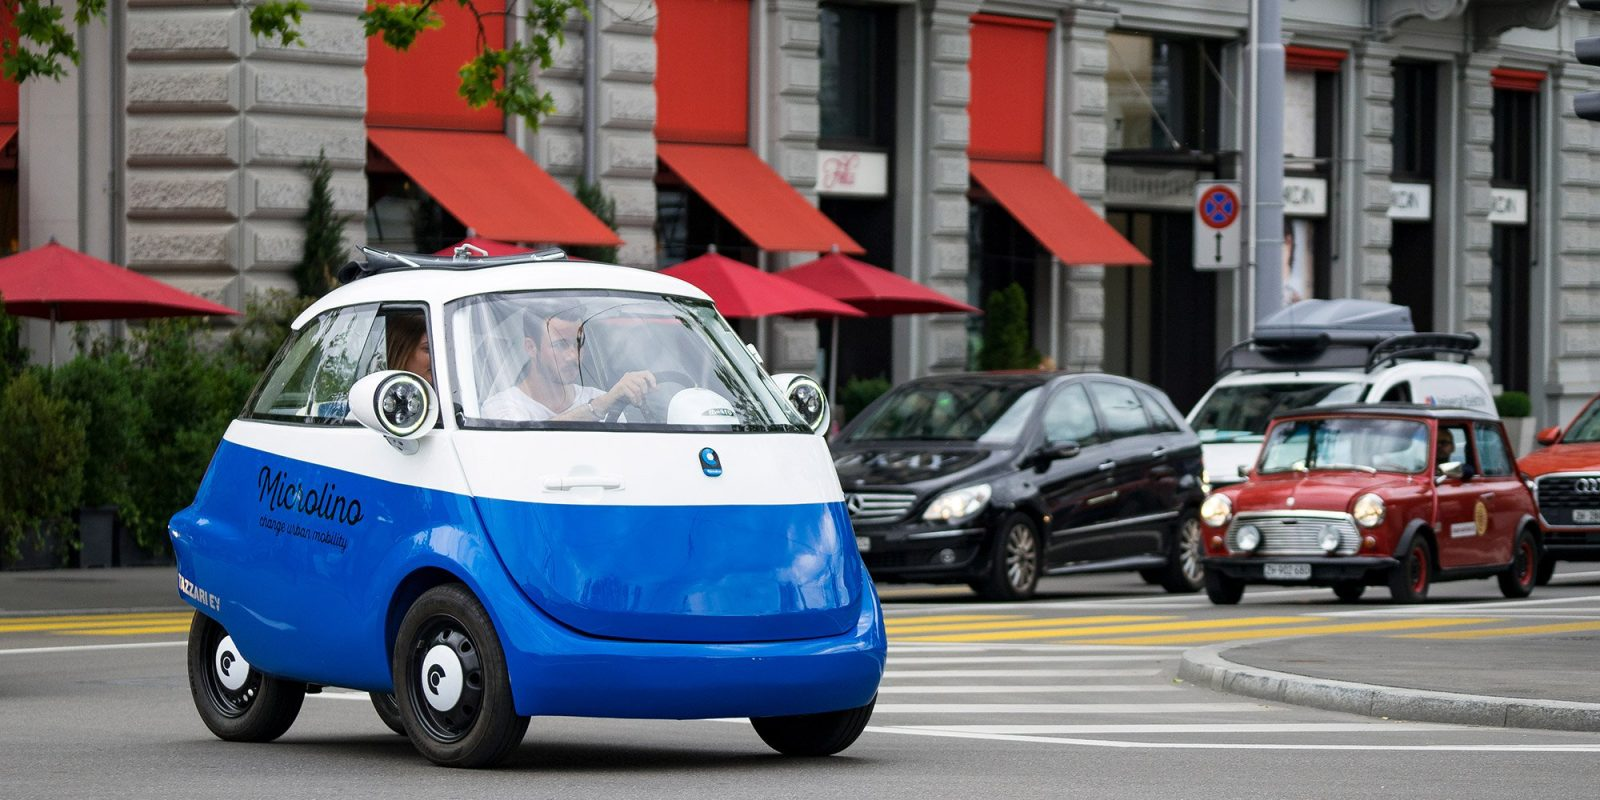 The Isetta-style Microlino electric bubble car surpasses 8,000 pre